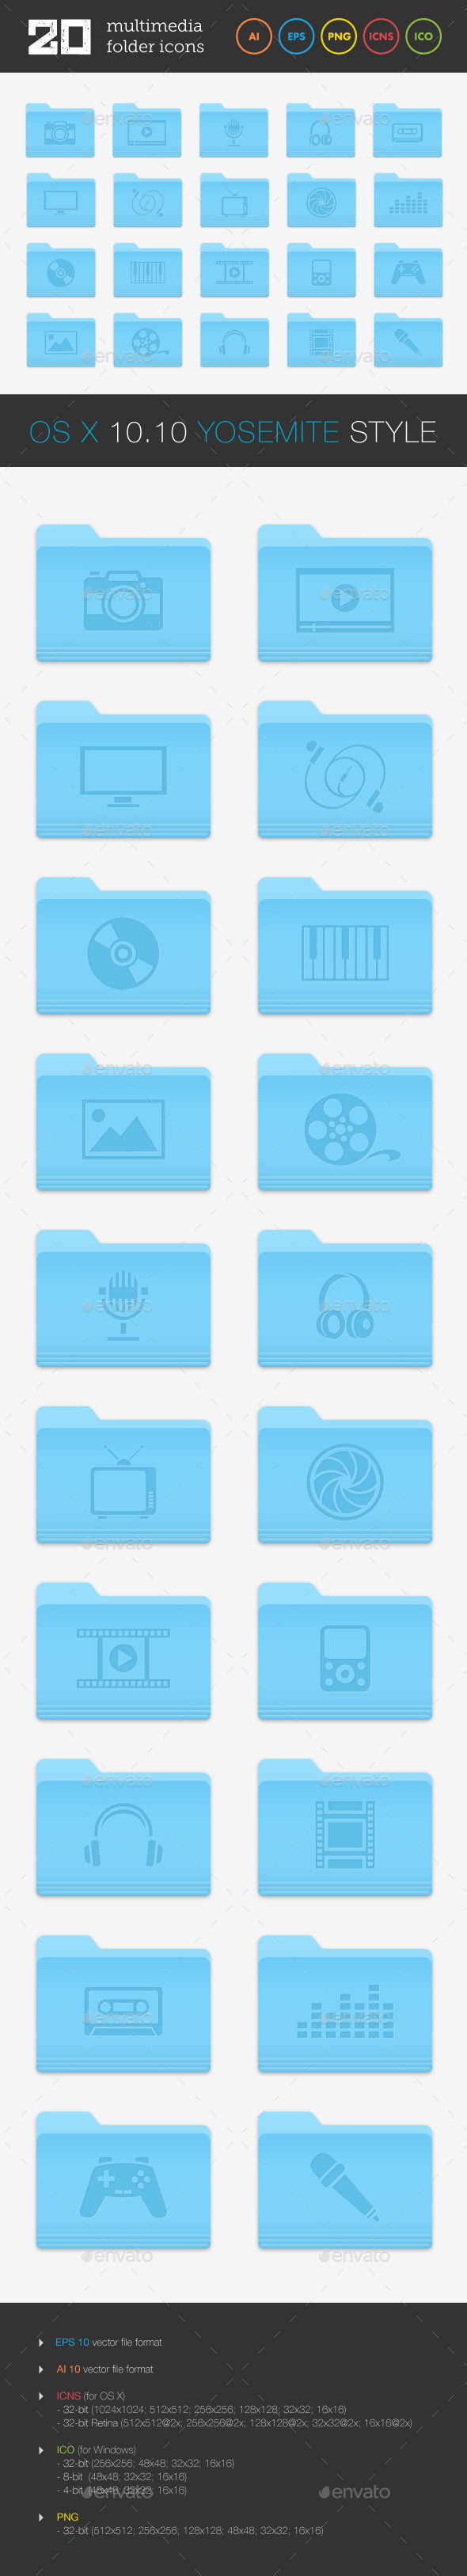 GraphicRiver Multimedia Folder Icons Set 9162188